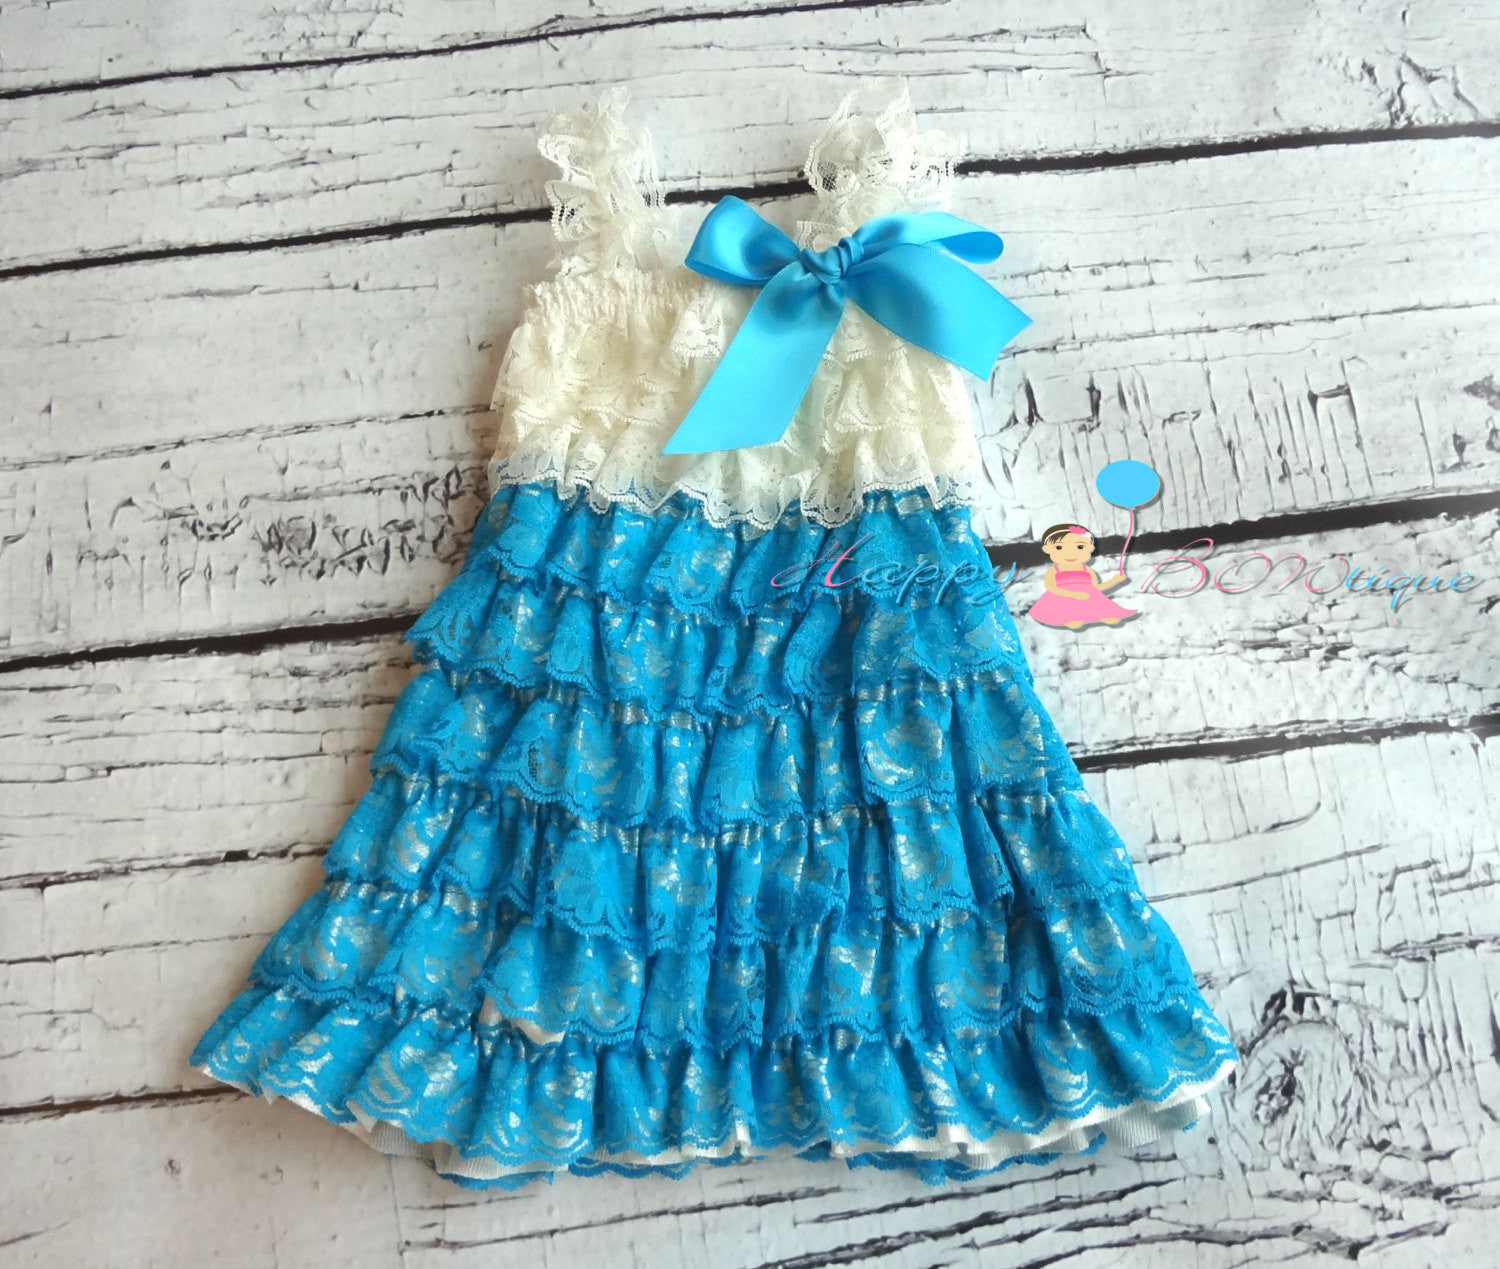 Girl's Lace Petti Dress/ Turquoise and Ivory Pink Girl's Dress Set - Happy BOWtique - children's clothing, Baby Girl clothing